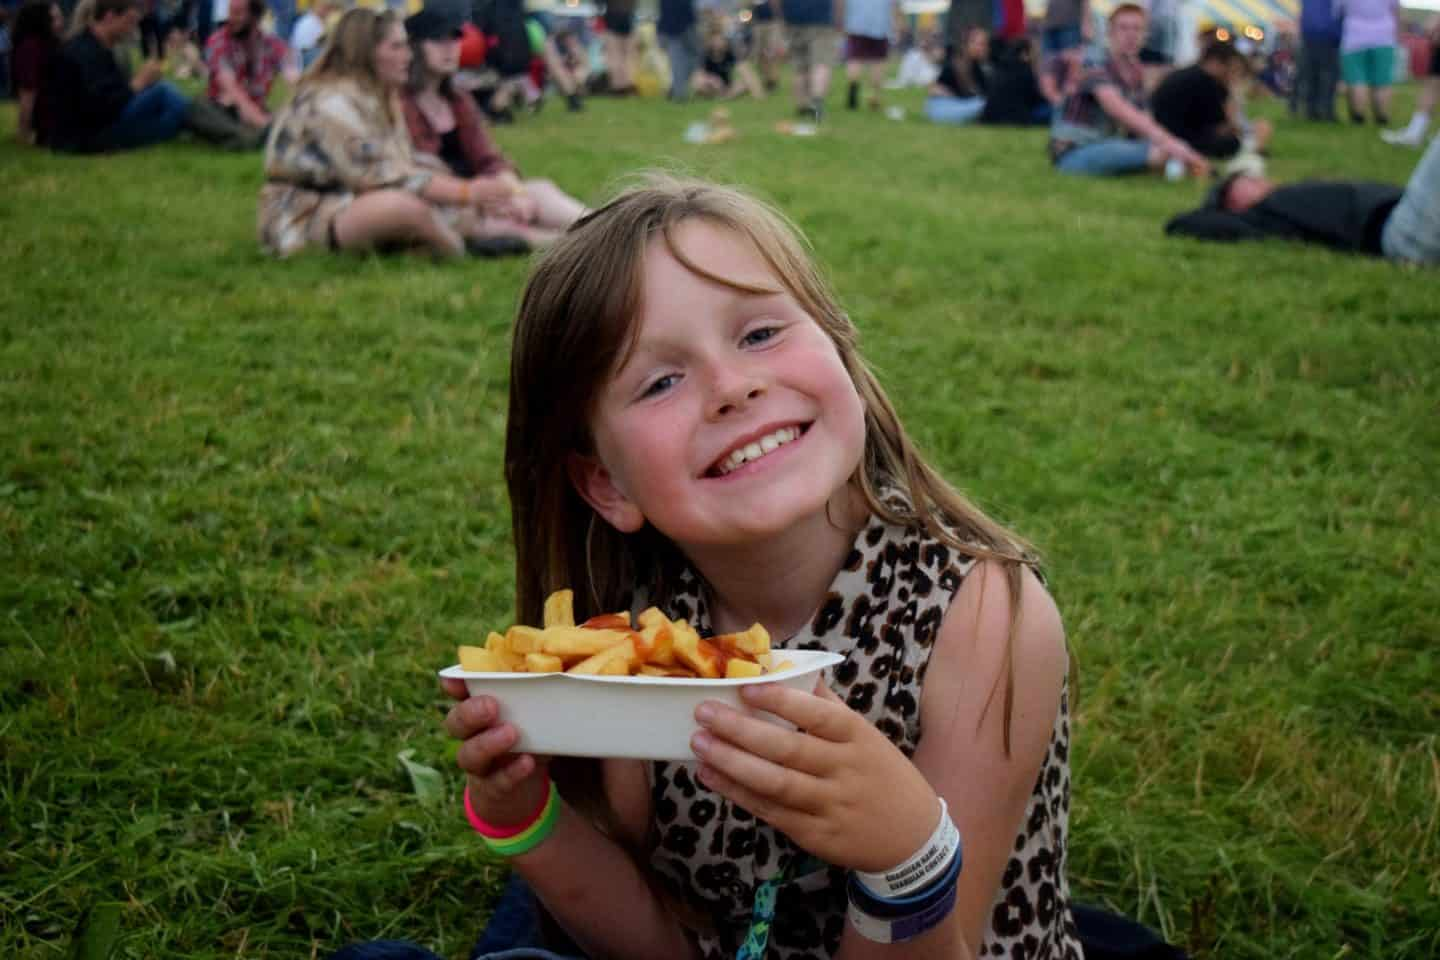 Little girl eating expensive chips at a festival